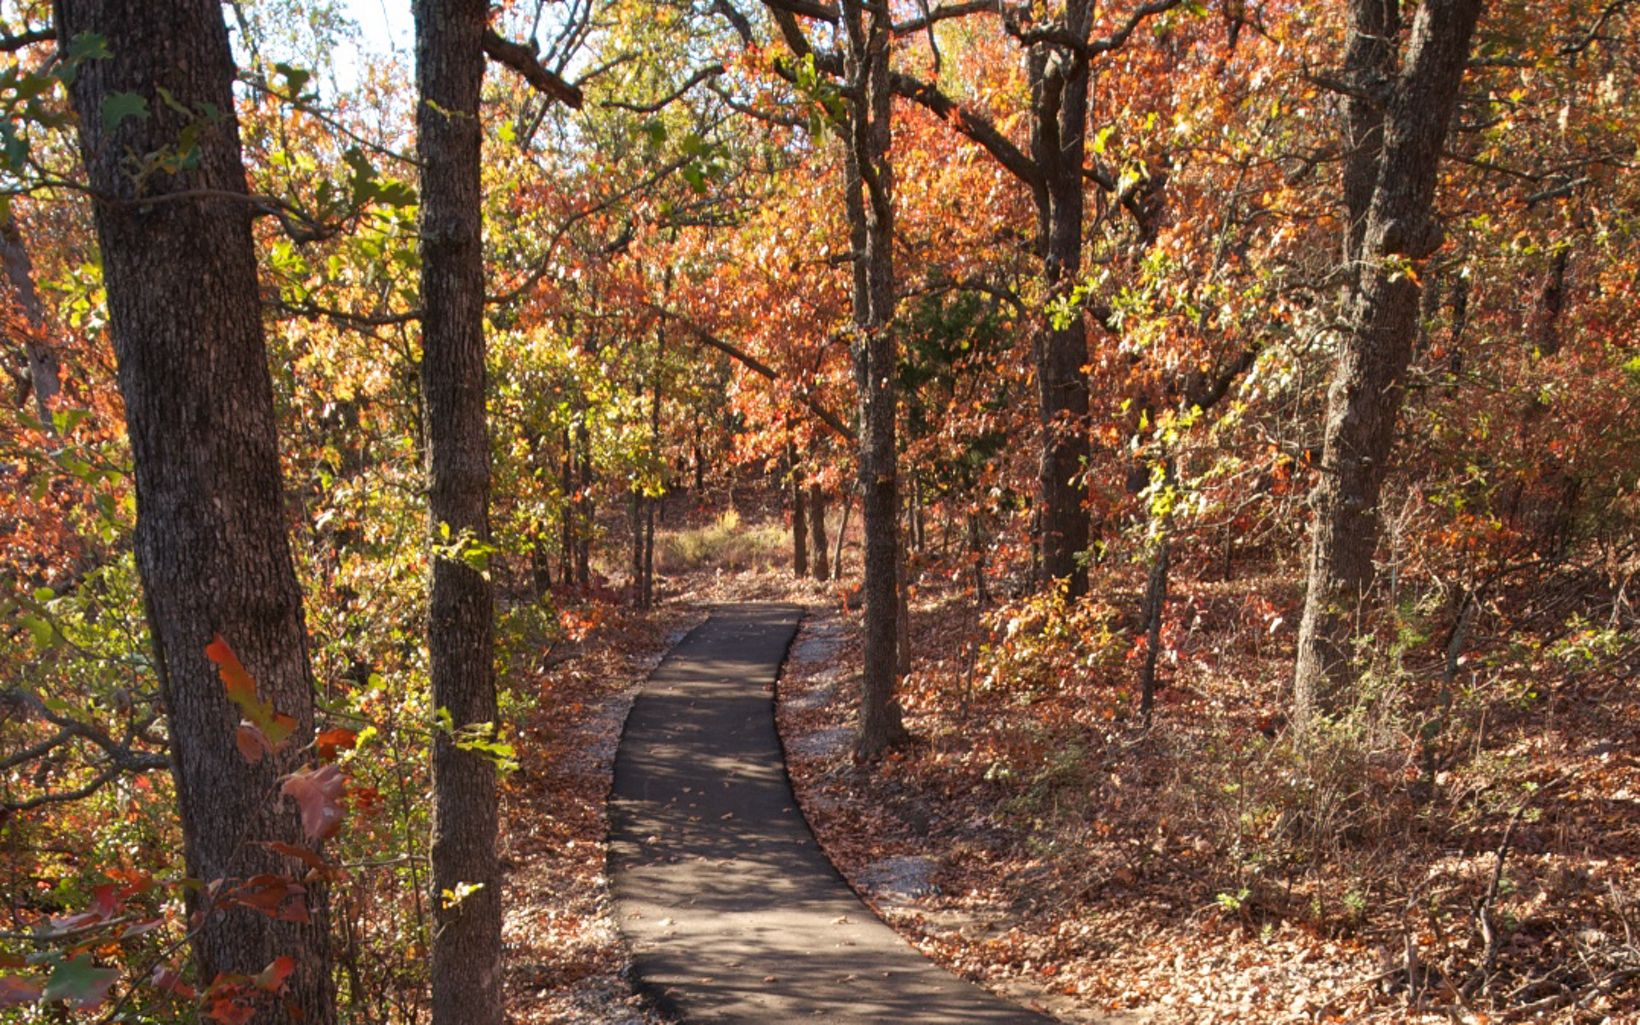 Enjoy a walk among the fall foliage at Keystone Ancient Forest Preserve in Sandsprings, OK.